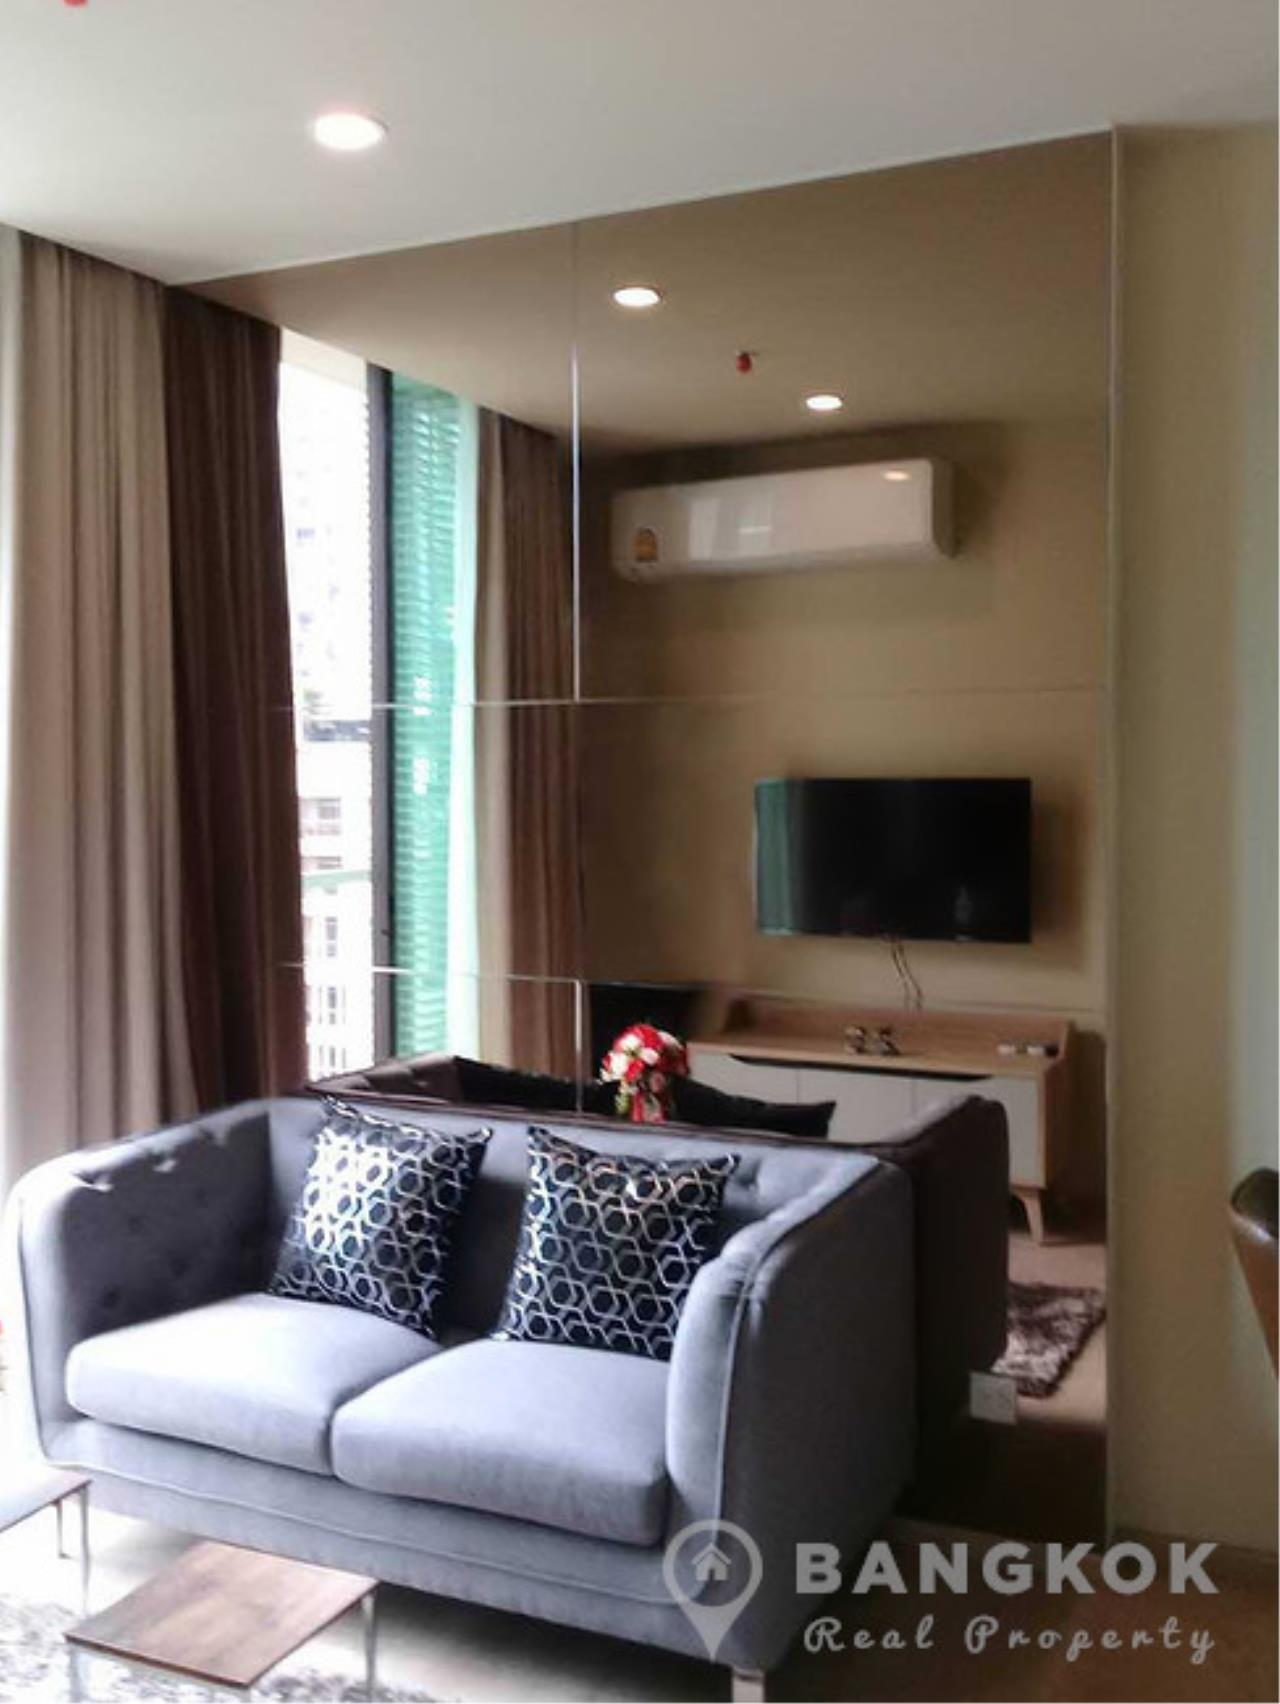 Bangkok Real Property Agency's Noble Recole Sukhumvit 19 | Brand New Modern 1 Bed near NIST School 2